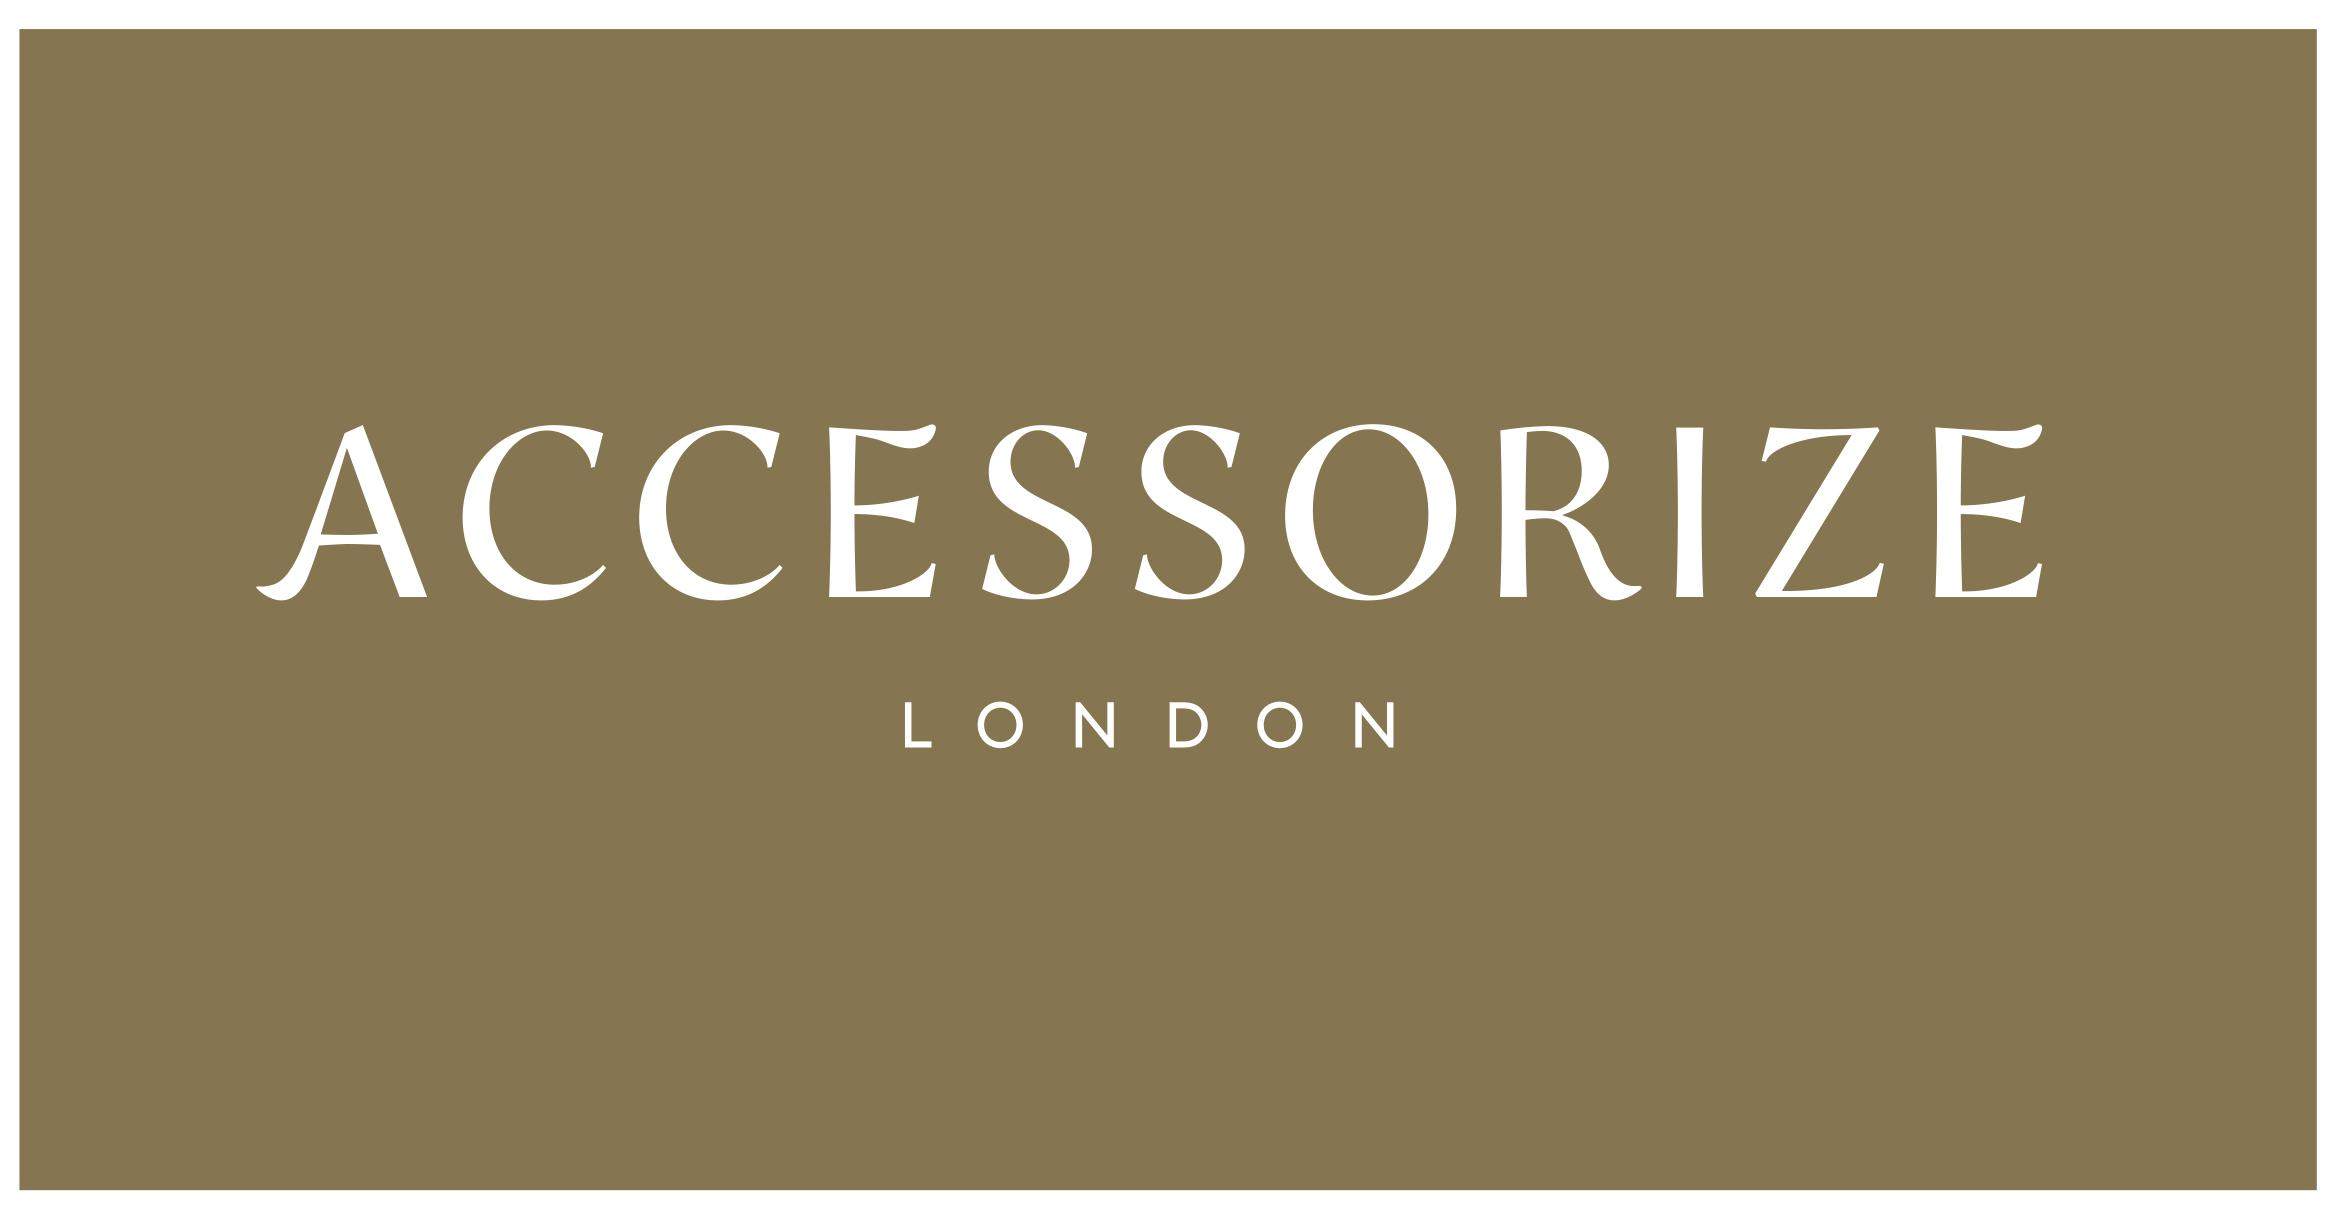 accessorize london by rasch